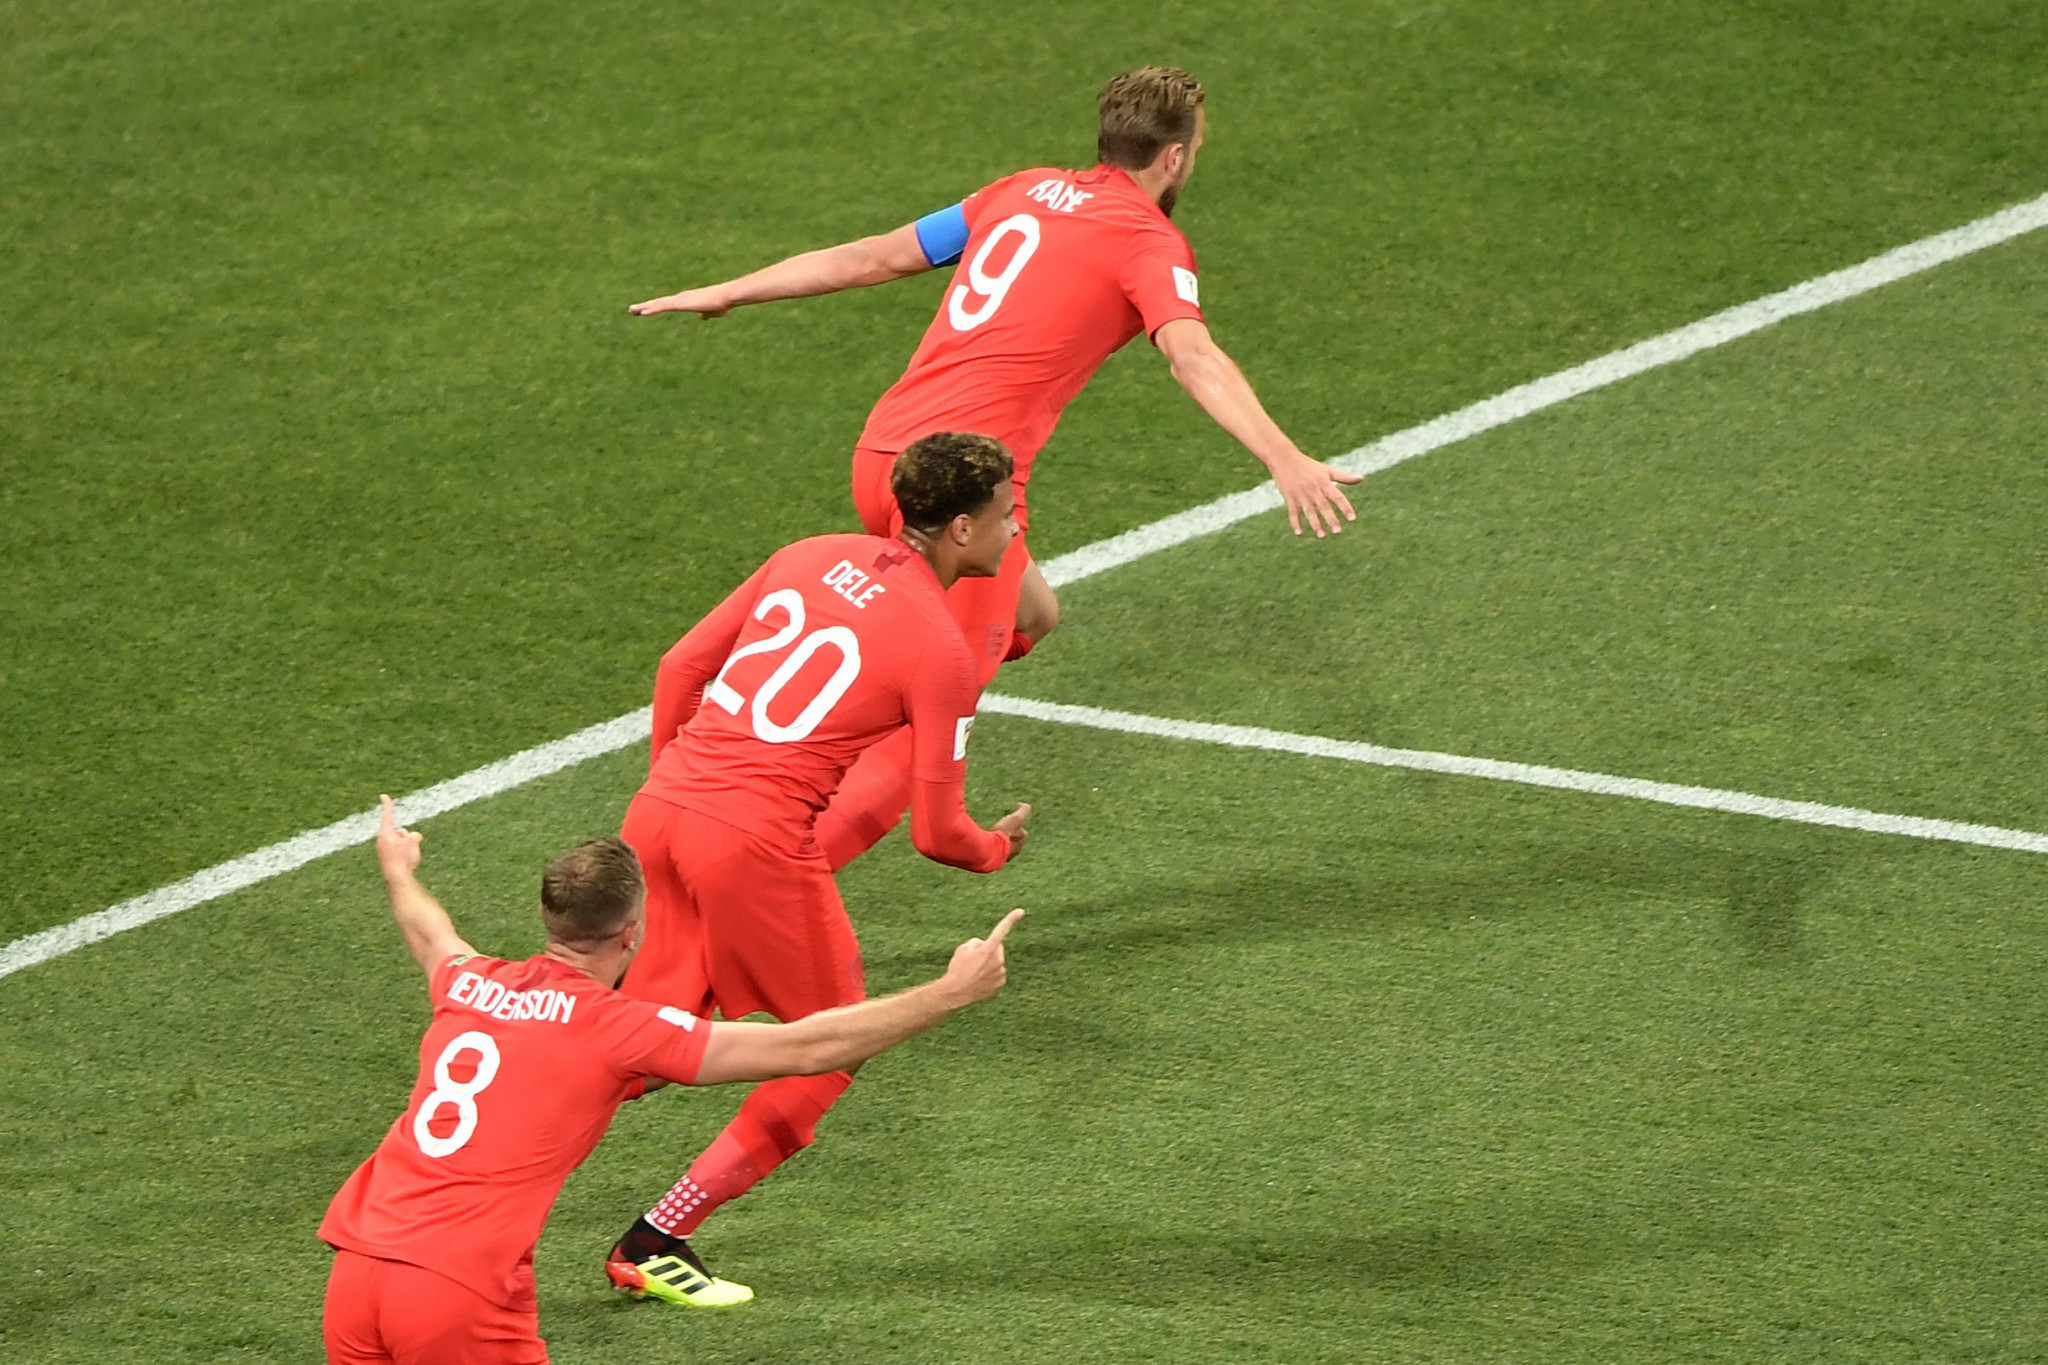 Harry Kane also scored twice for England ©Getty Images